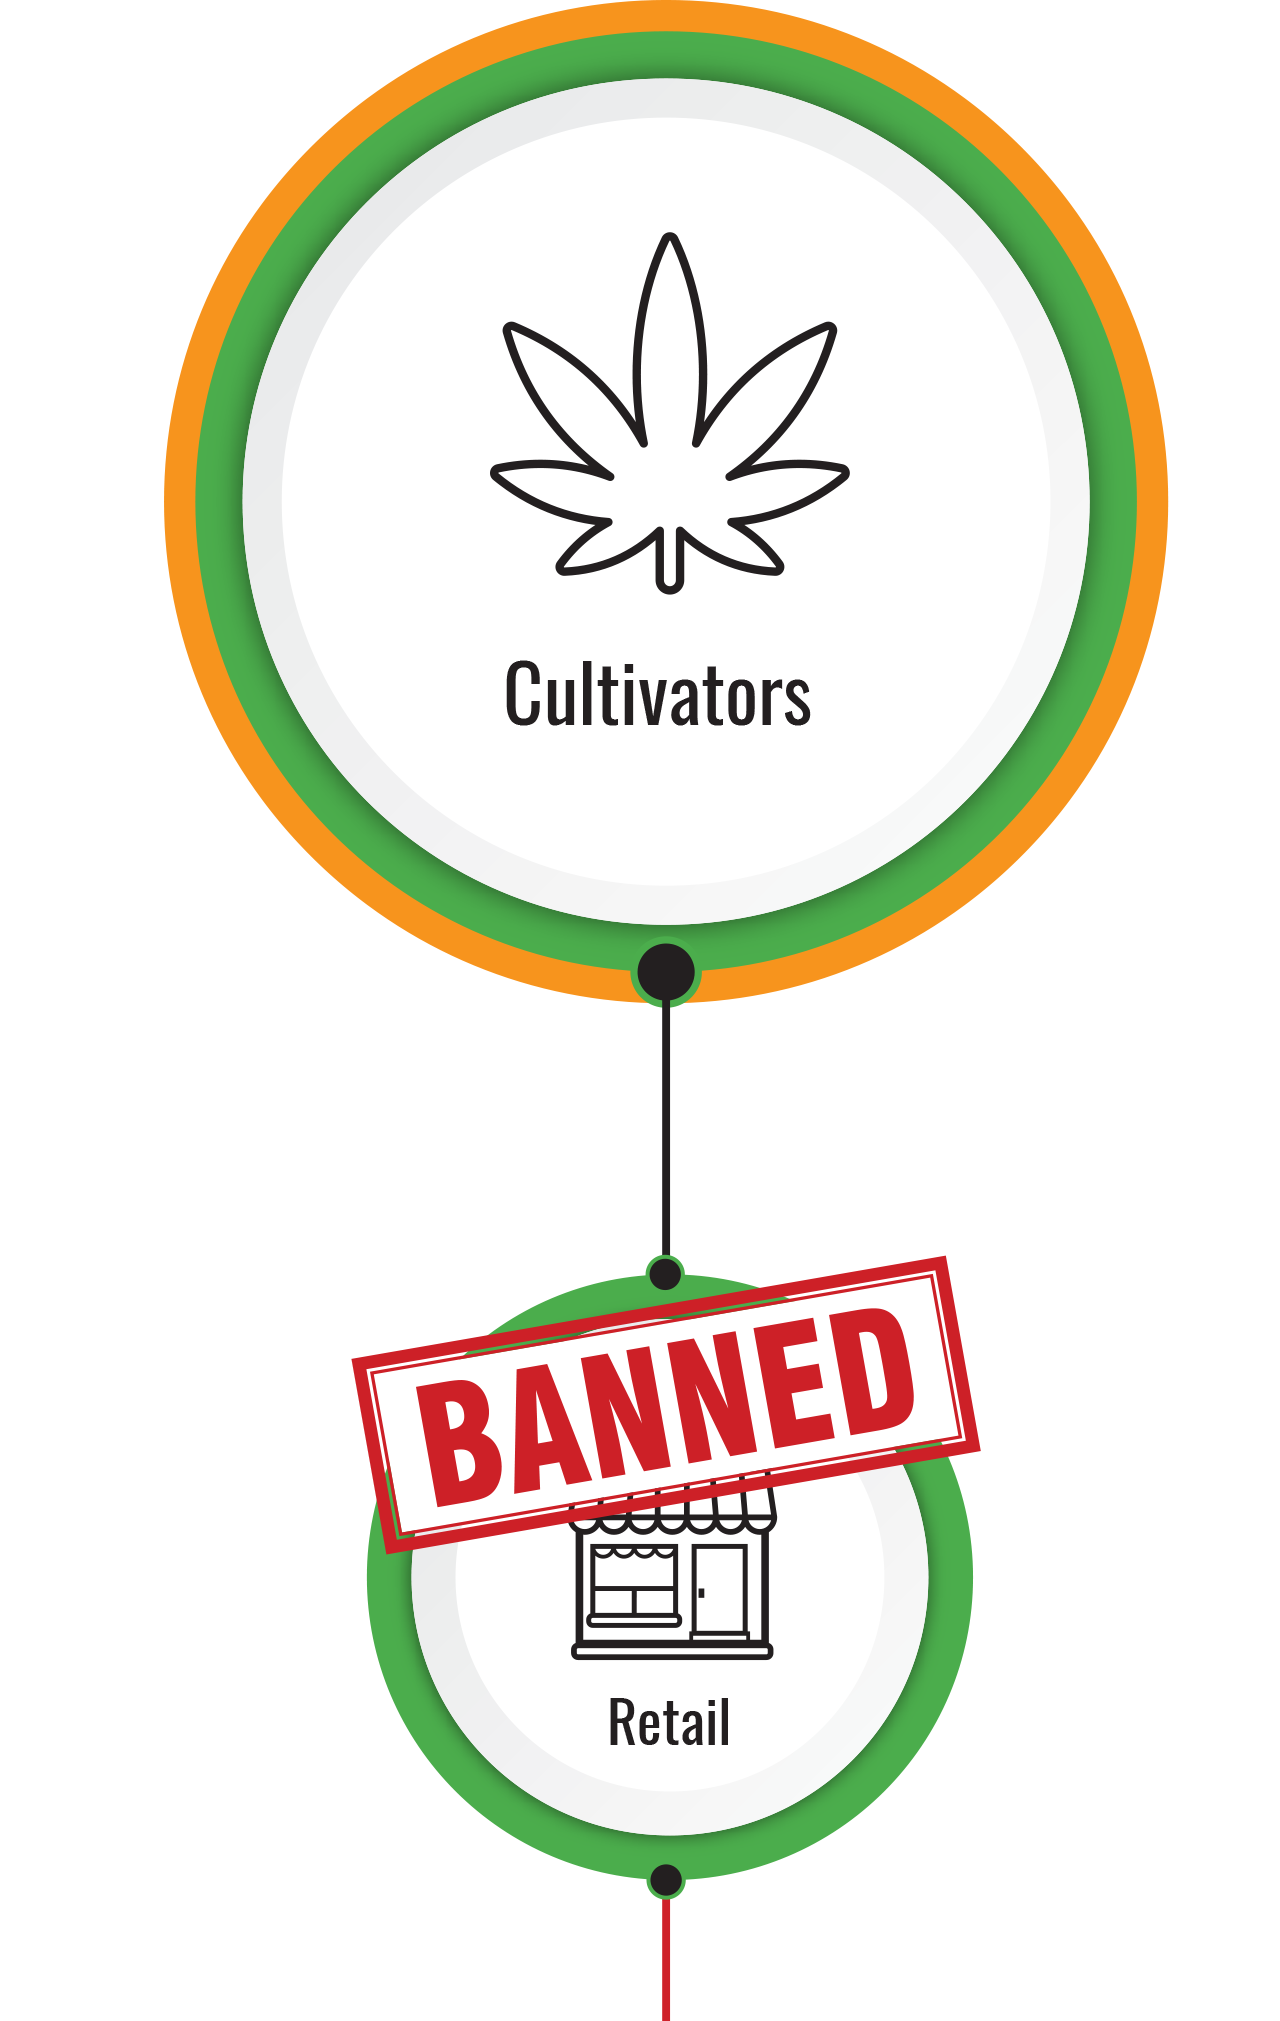 cultivators to retailers banned